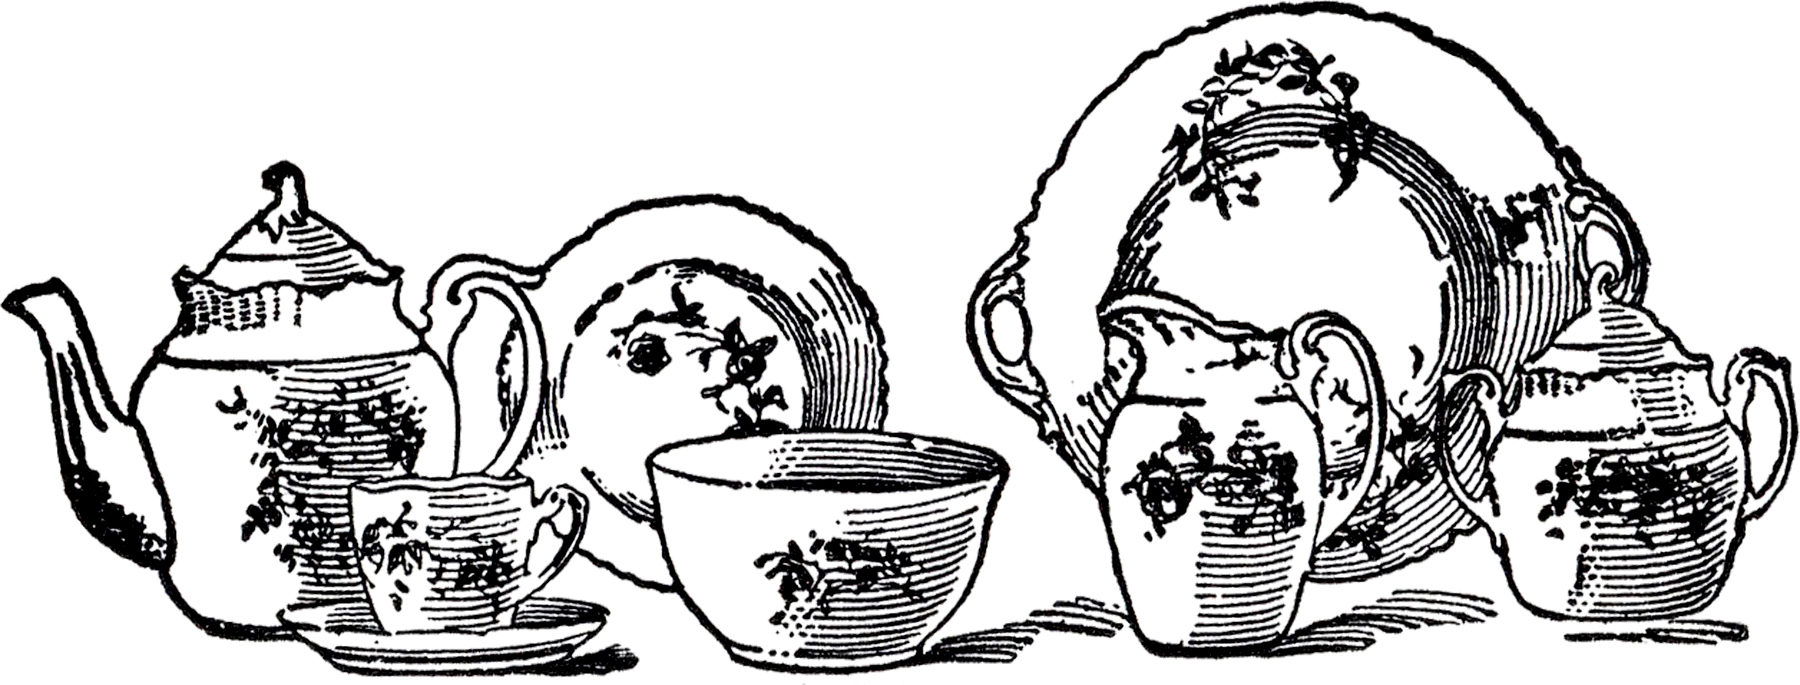 1800x685 Tea Set Clipart Drawing